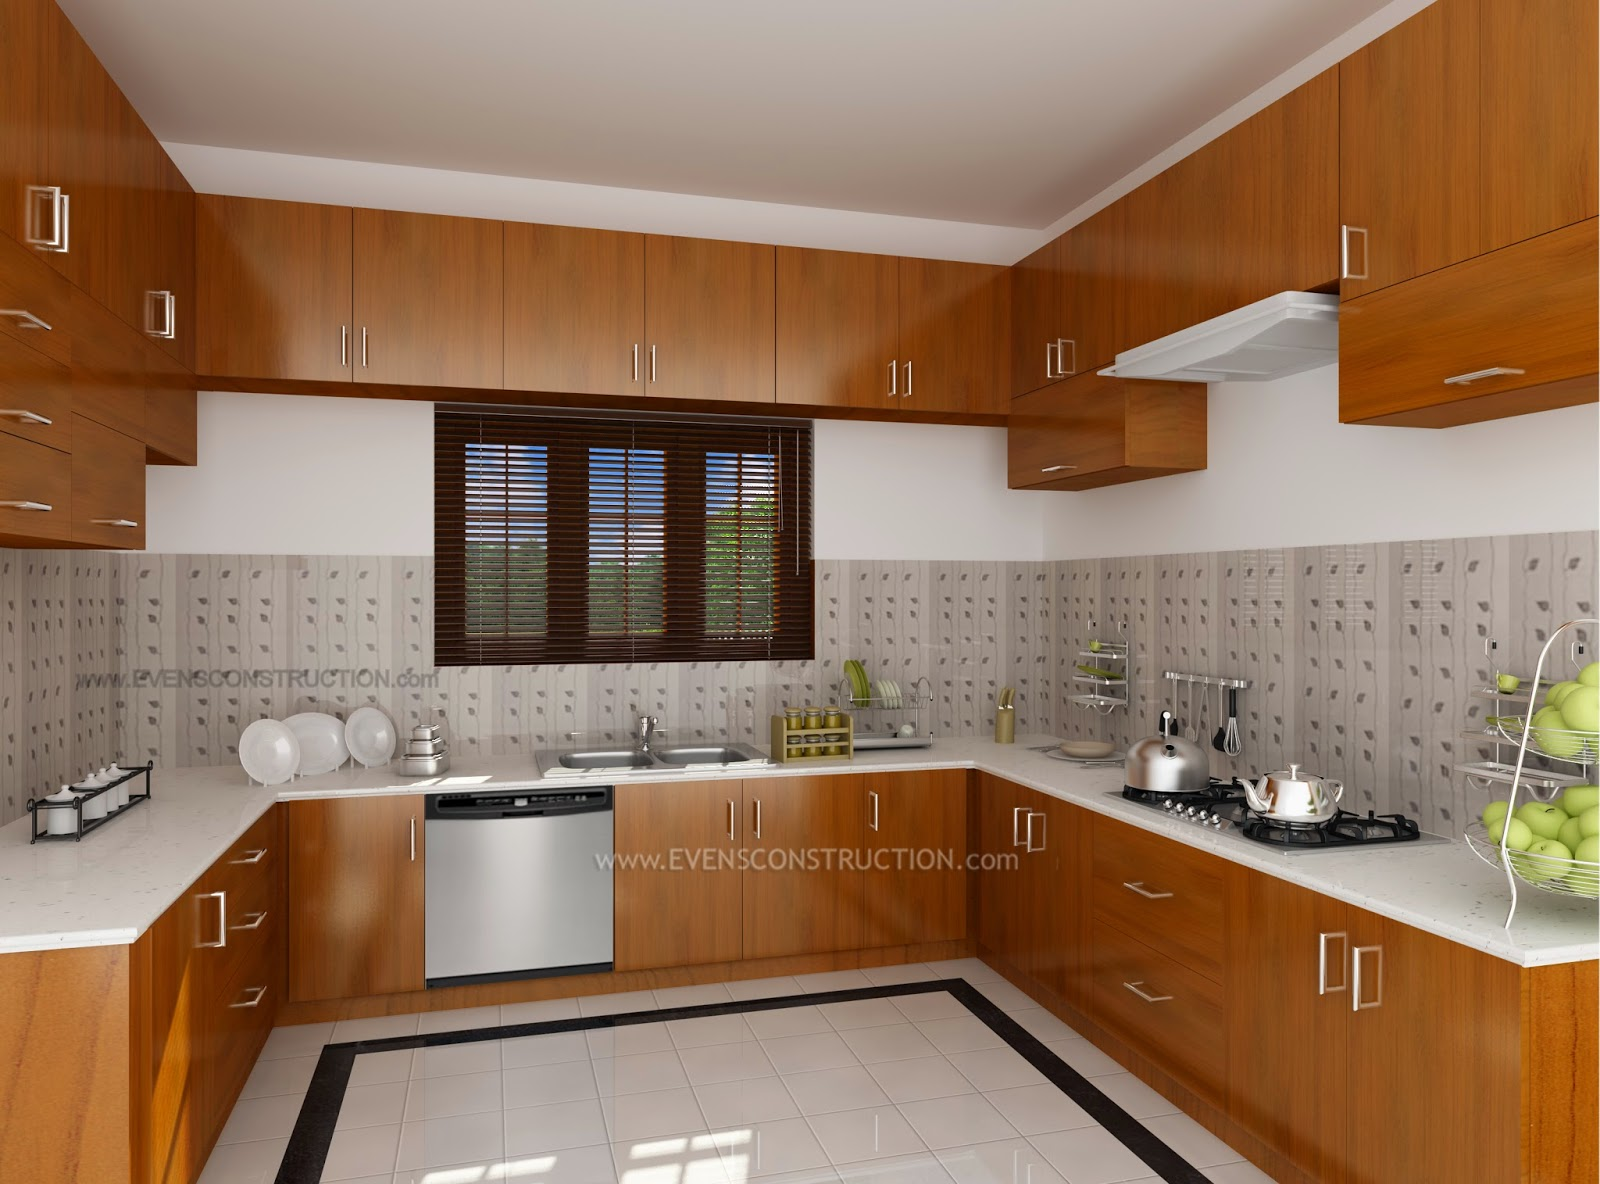 Evens construction pvt ltd october 2014 for Interior design for kitchen in kerala